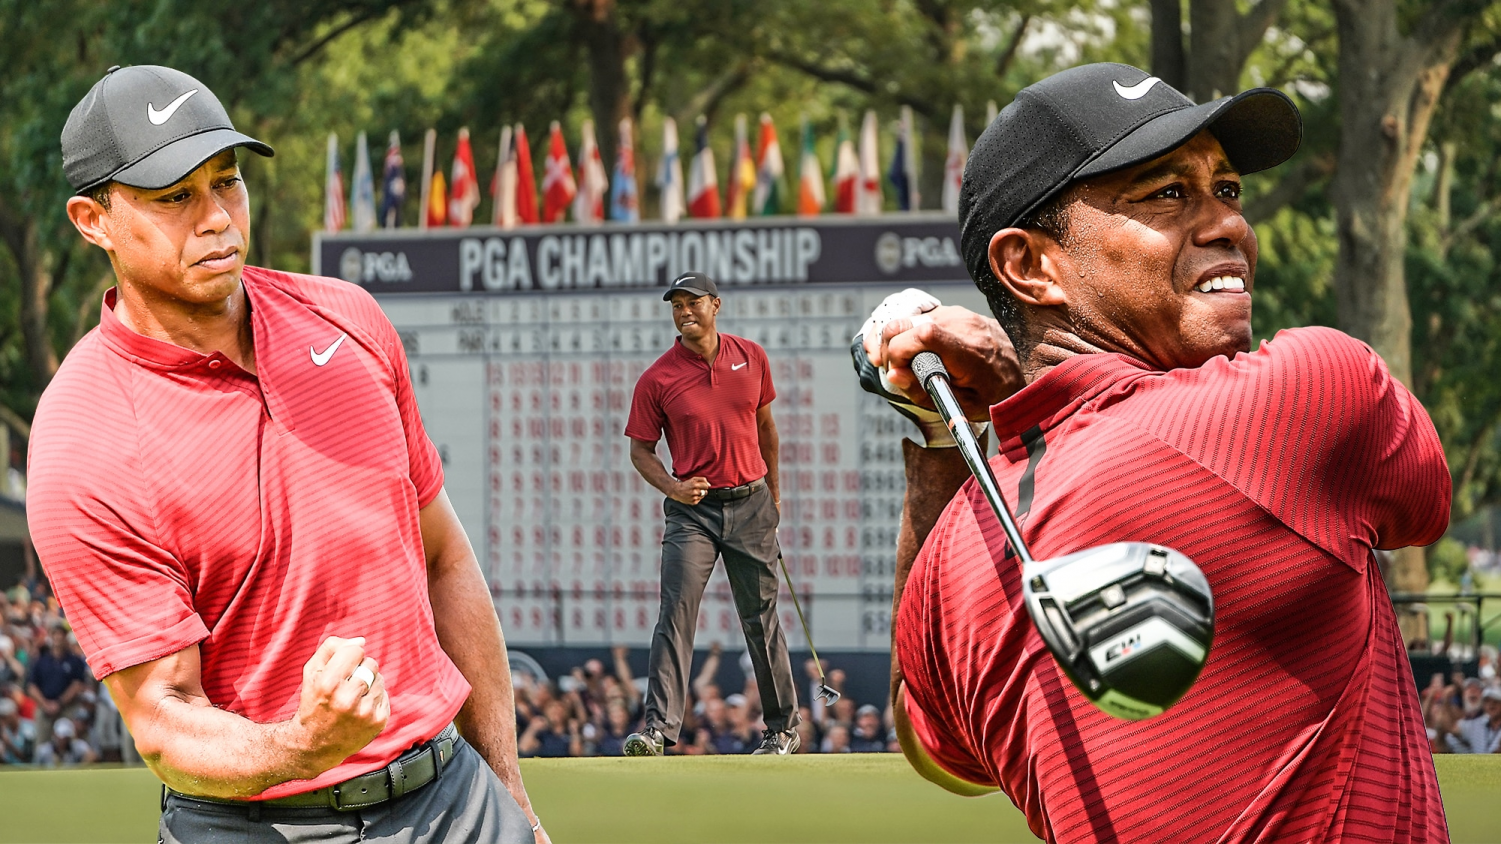 Tiger Woods is experiencing an historic comeback season that many didn't think was possible just a few months ago.